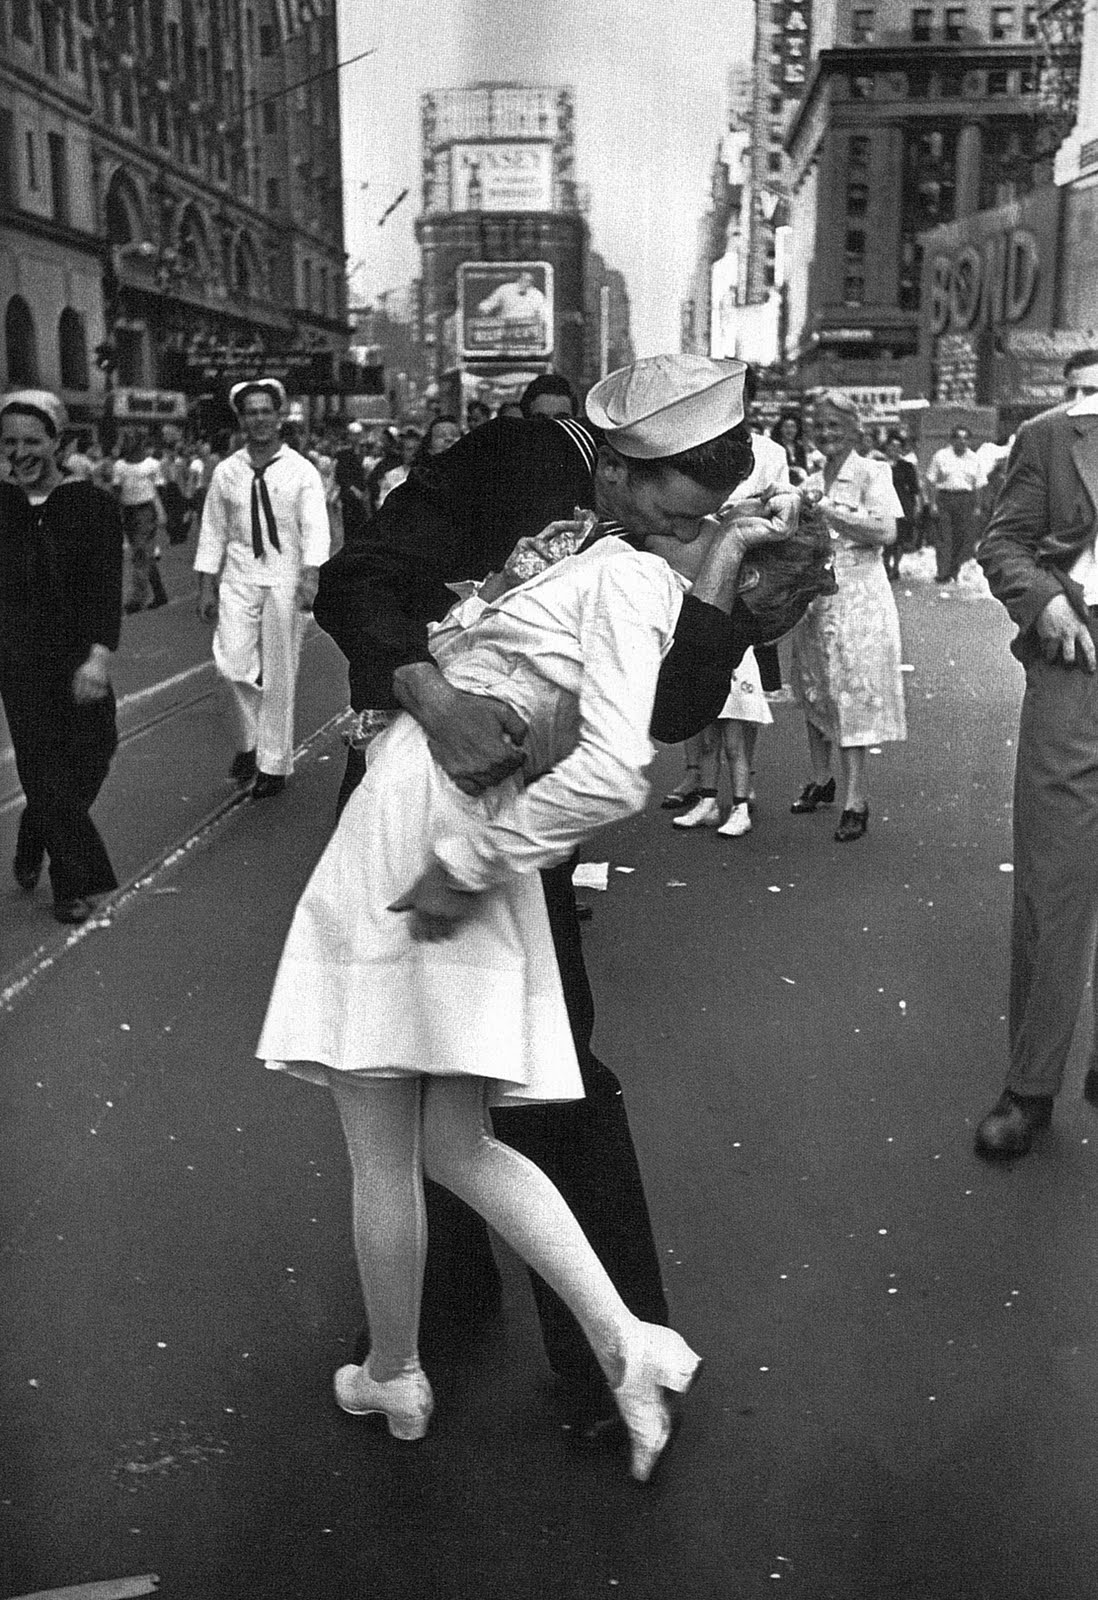 The Kiss. Photo by Alfred Eisenstaedt, 1945